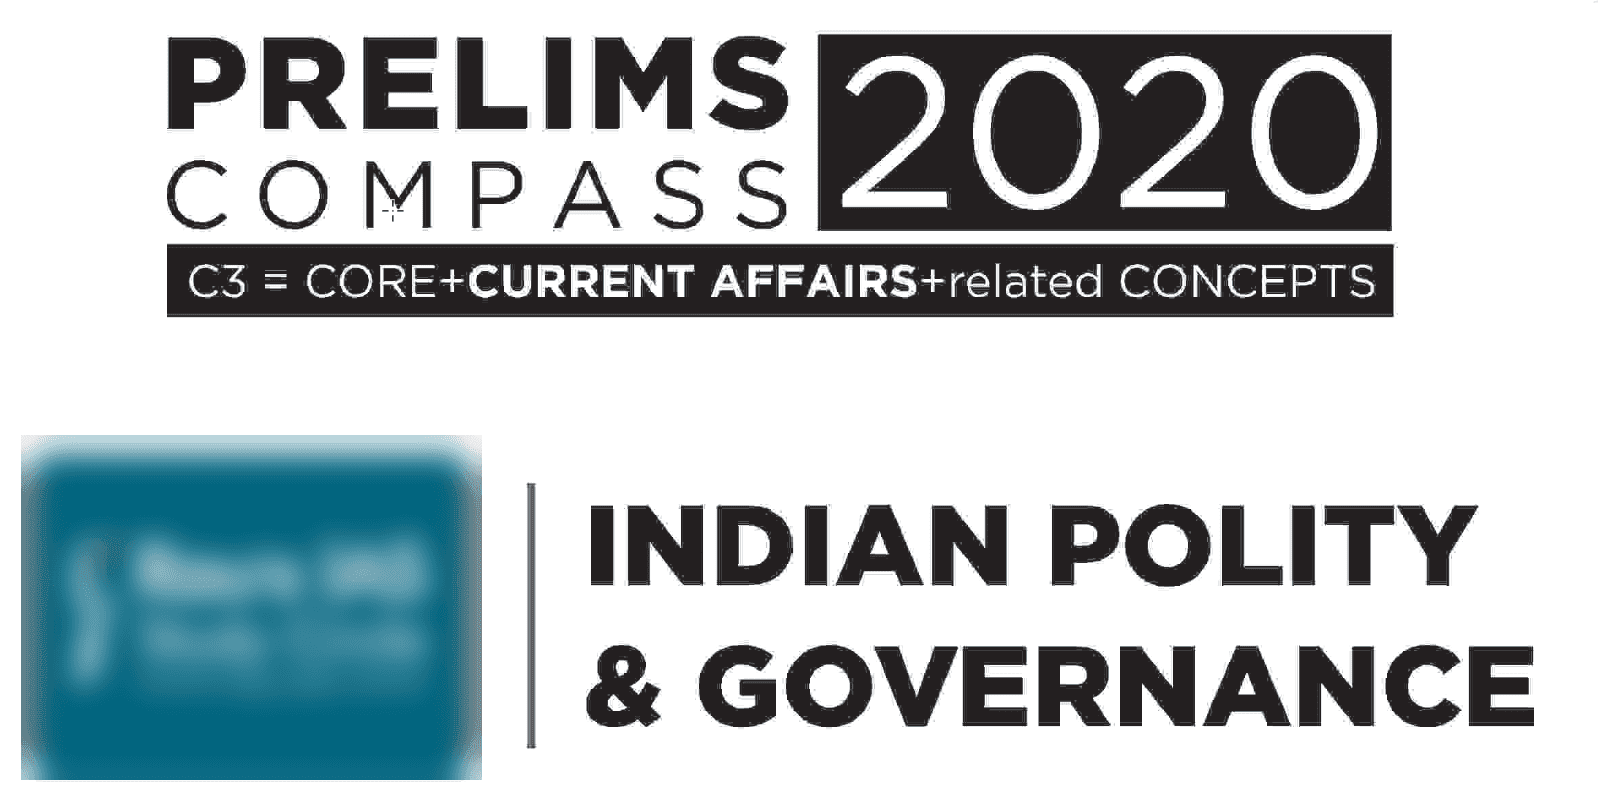 Indian Polity and Governance Prelims 2020